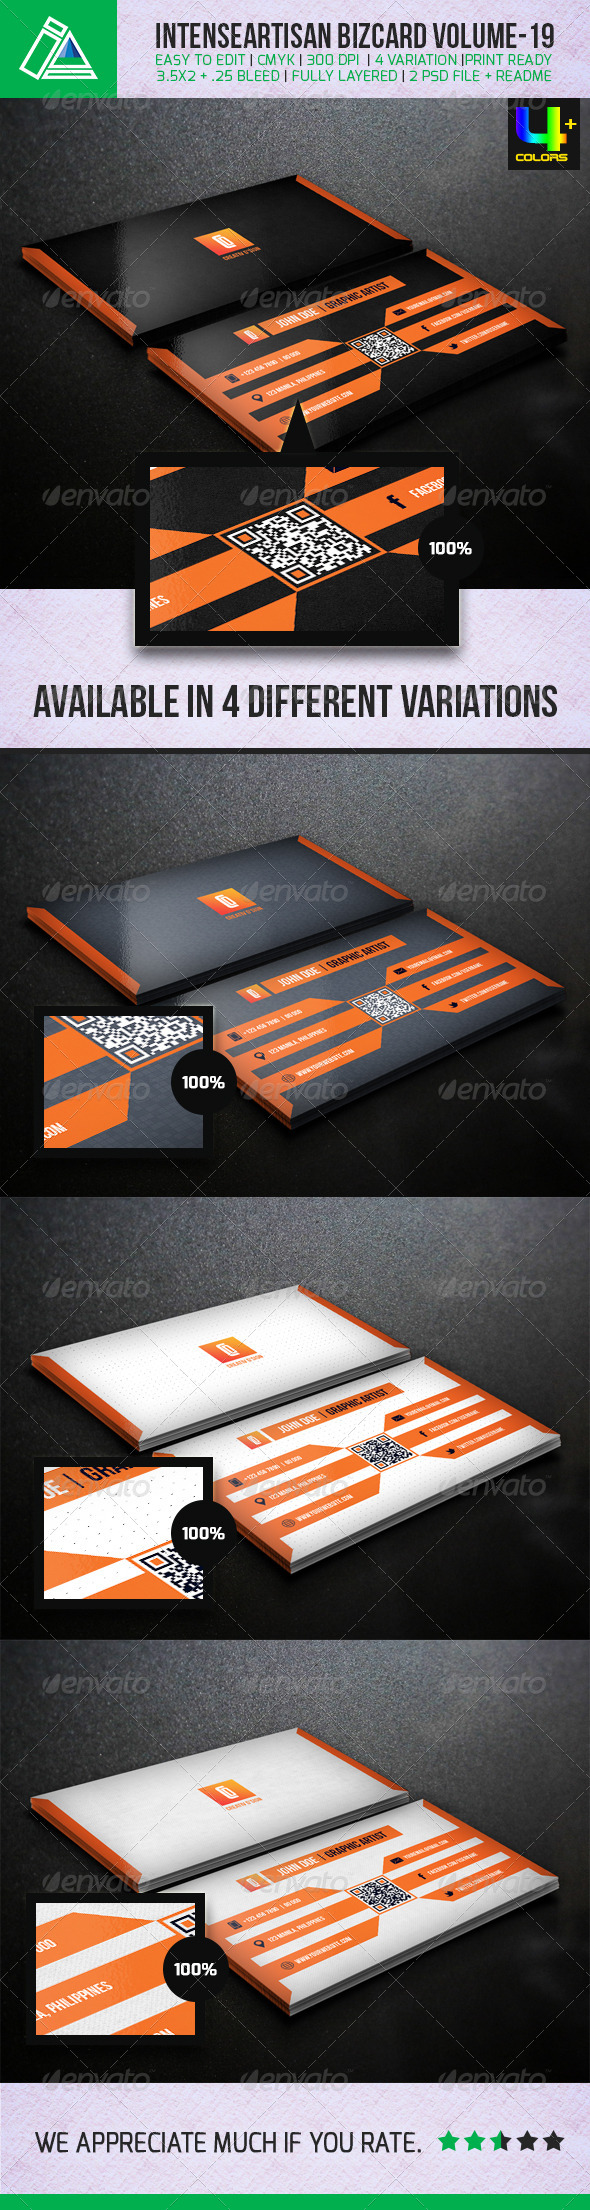 IntenseArtisan Creative Business Card Vol-19 - Creative Business Cards